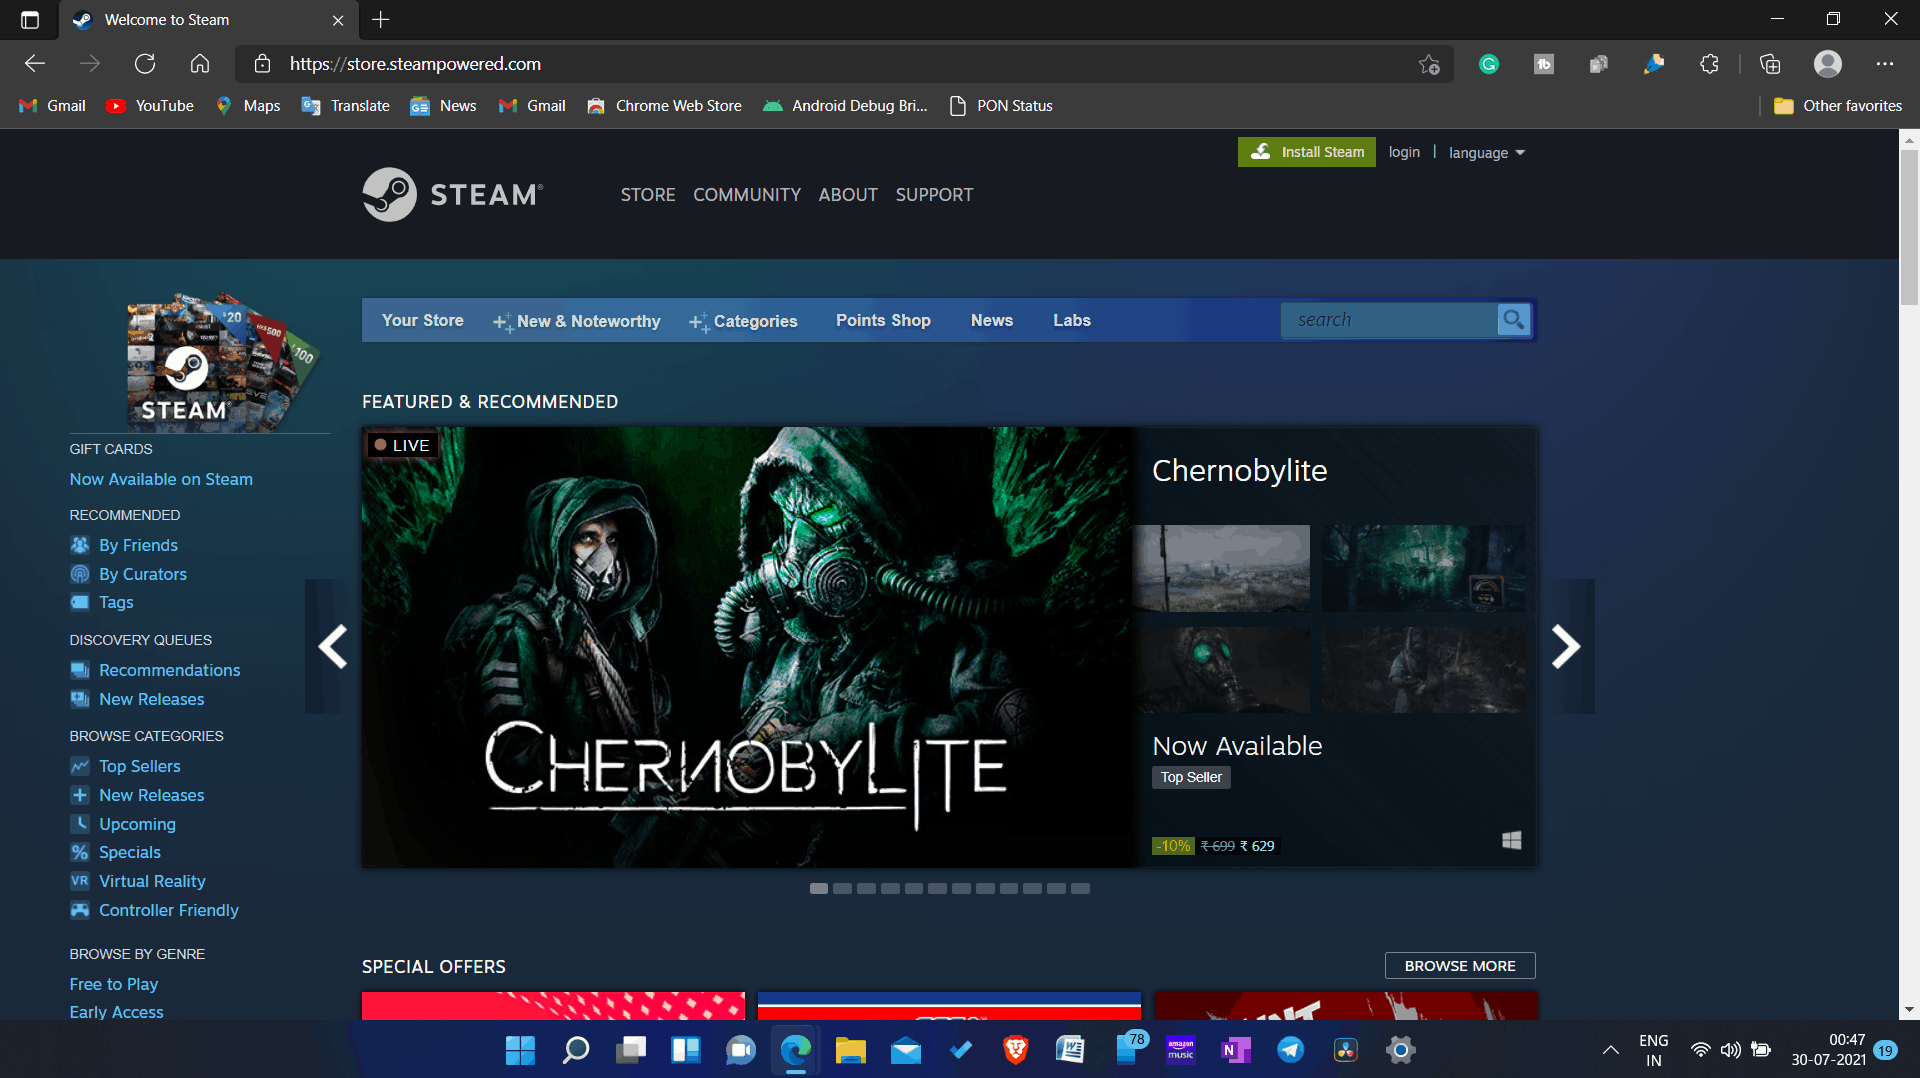 How To Fix Pending Transaction Error In Steam?